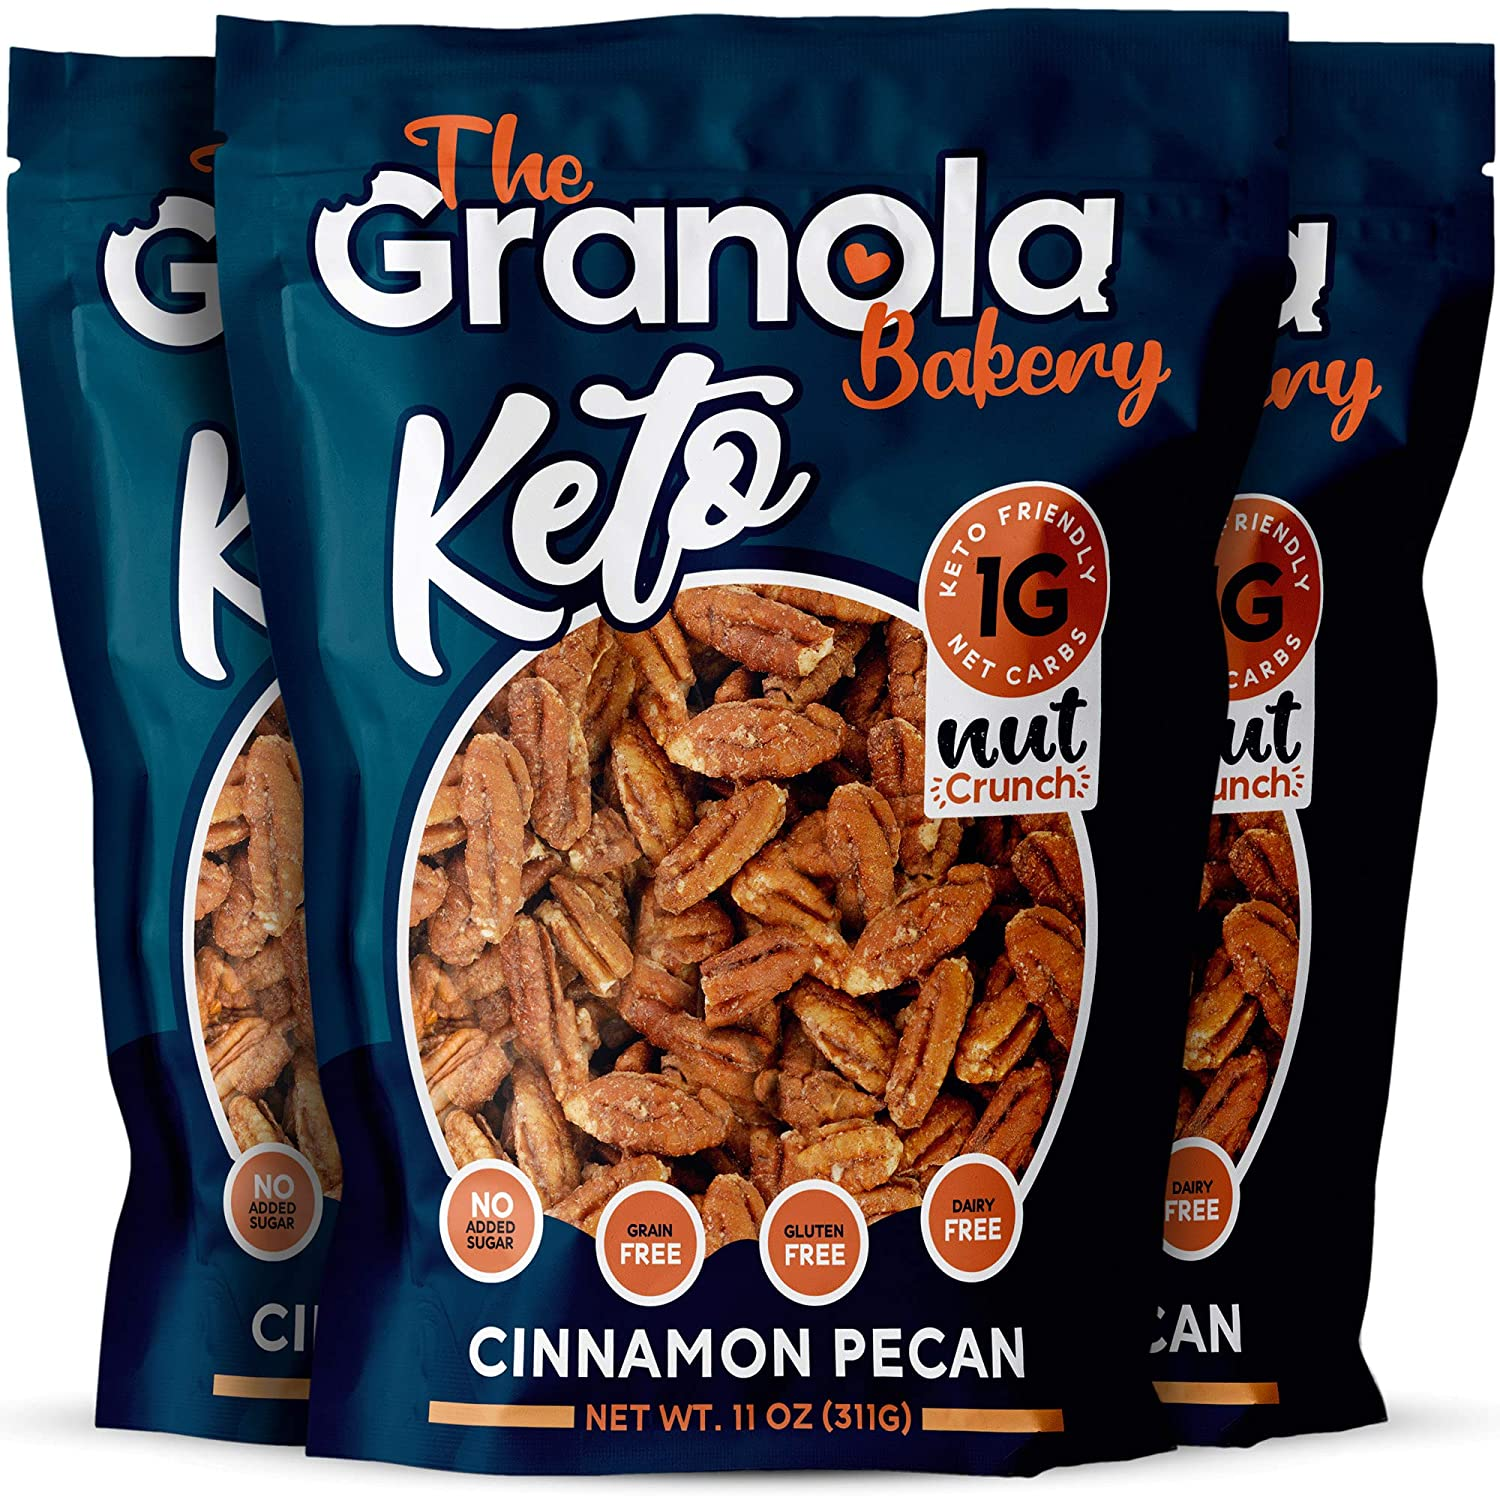 The Granola Bakery Keto Candied Pecans | Low Carb Keto Nut Snack | 2g Net Carb, Low Sugar | Small Batch, Hand Crafted | Cinnamon Pecan, 28.5 Ounces (Pack of 3)